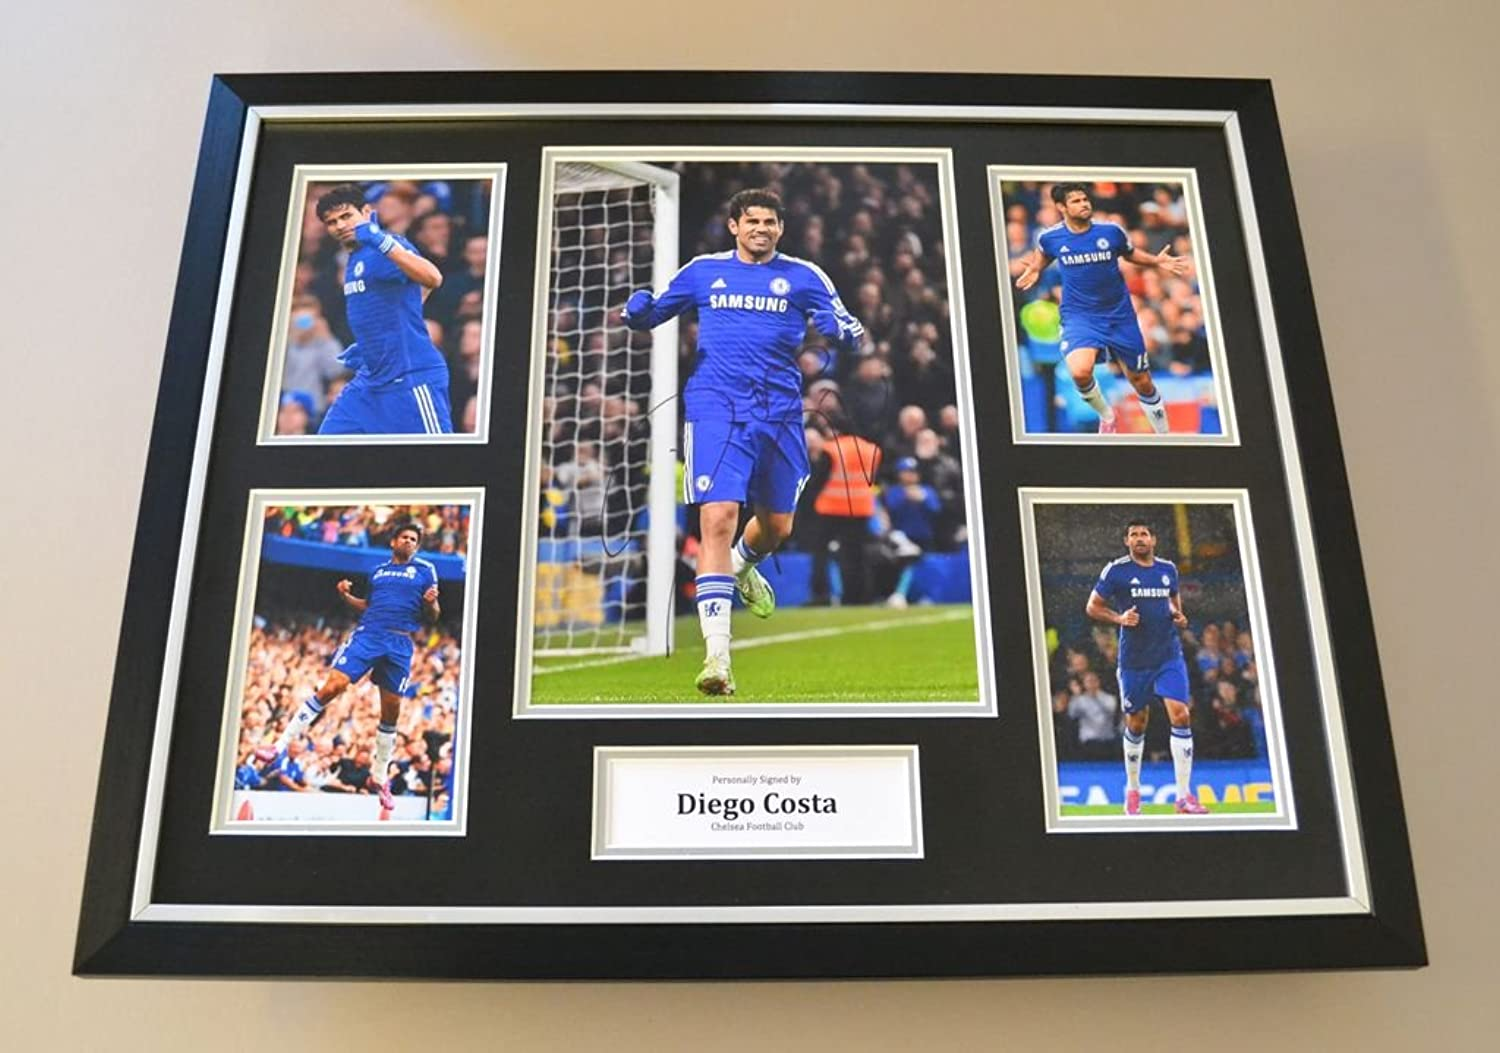 Diego Costa Signed Photo Large Framed Autograph Display Chelsea Memorabilia +COA